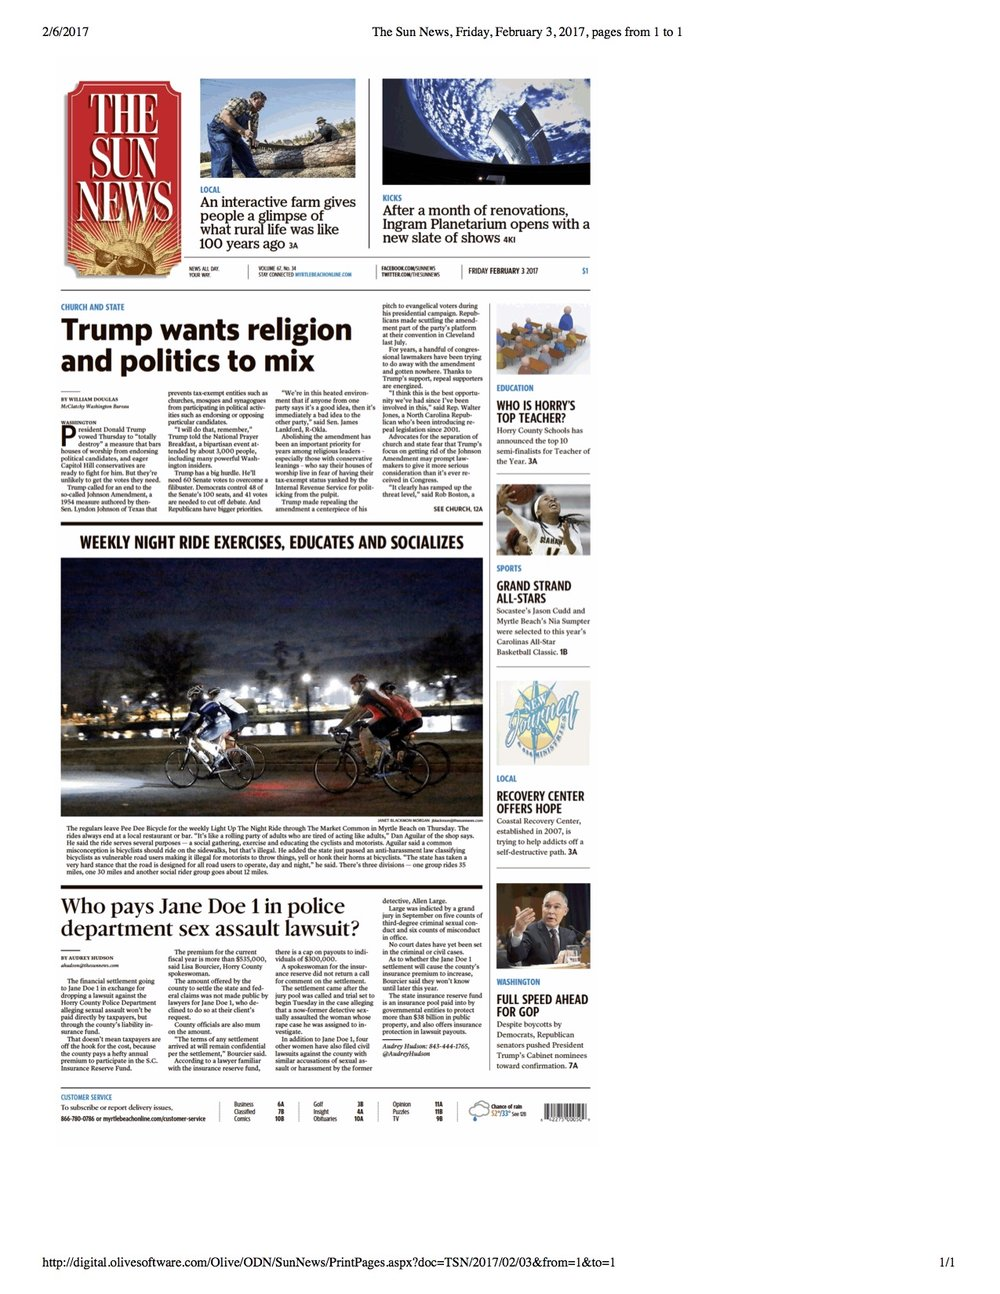 The Sun News, Friday, February 3, 2017, pages from 1 to 1.jpg